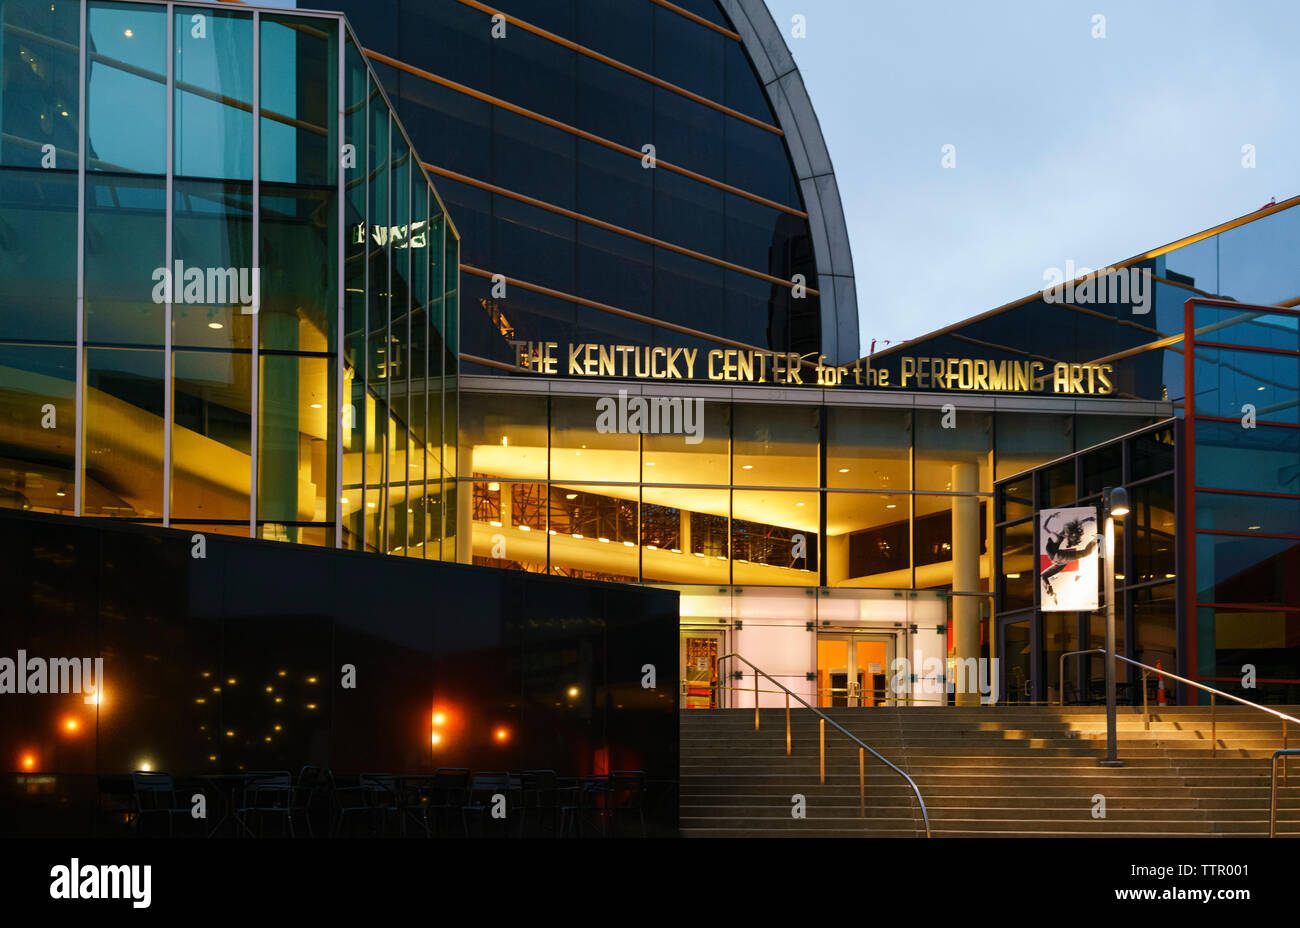 Kentucky Center for the Performing Arts: Louisville Orchestra, Ballet, Kentucky Opera, Stage One Family Theatre, PNC Bank Broadway in Louisville Stock Photo